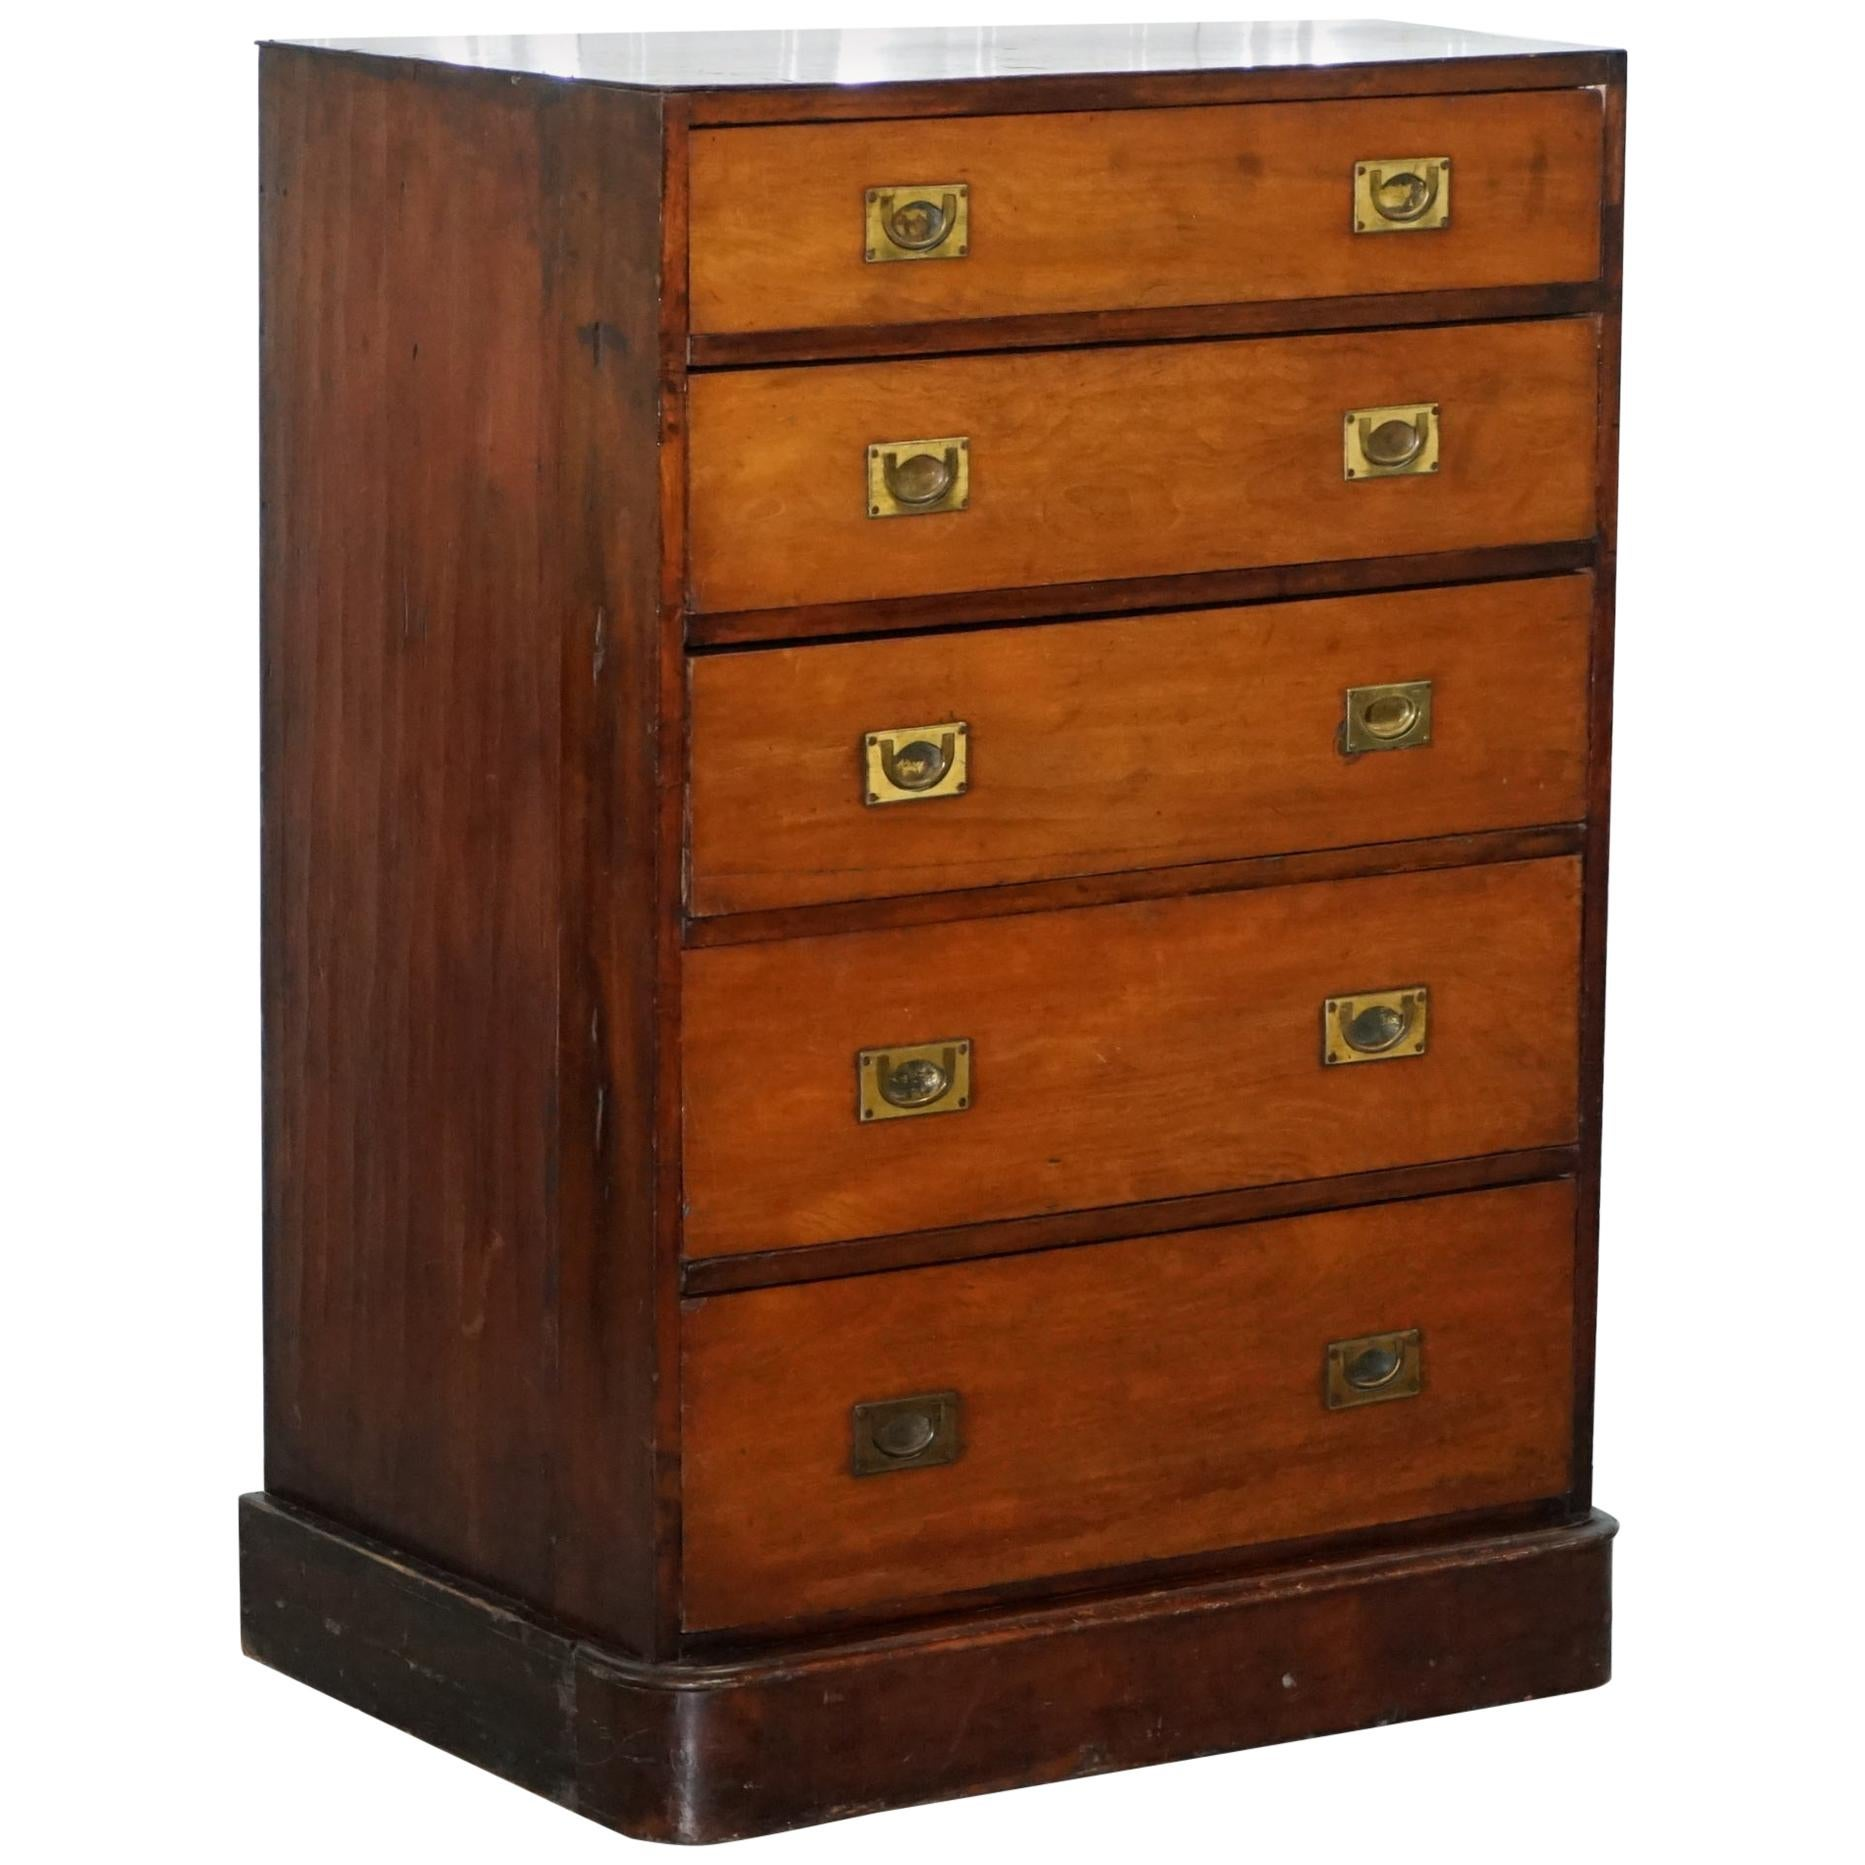 Antique Tall Hardwood Military Campaign Chest of Drawers, circa 1860